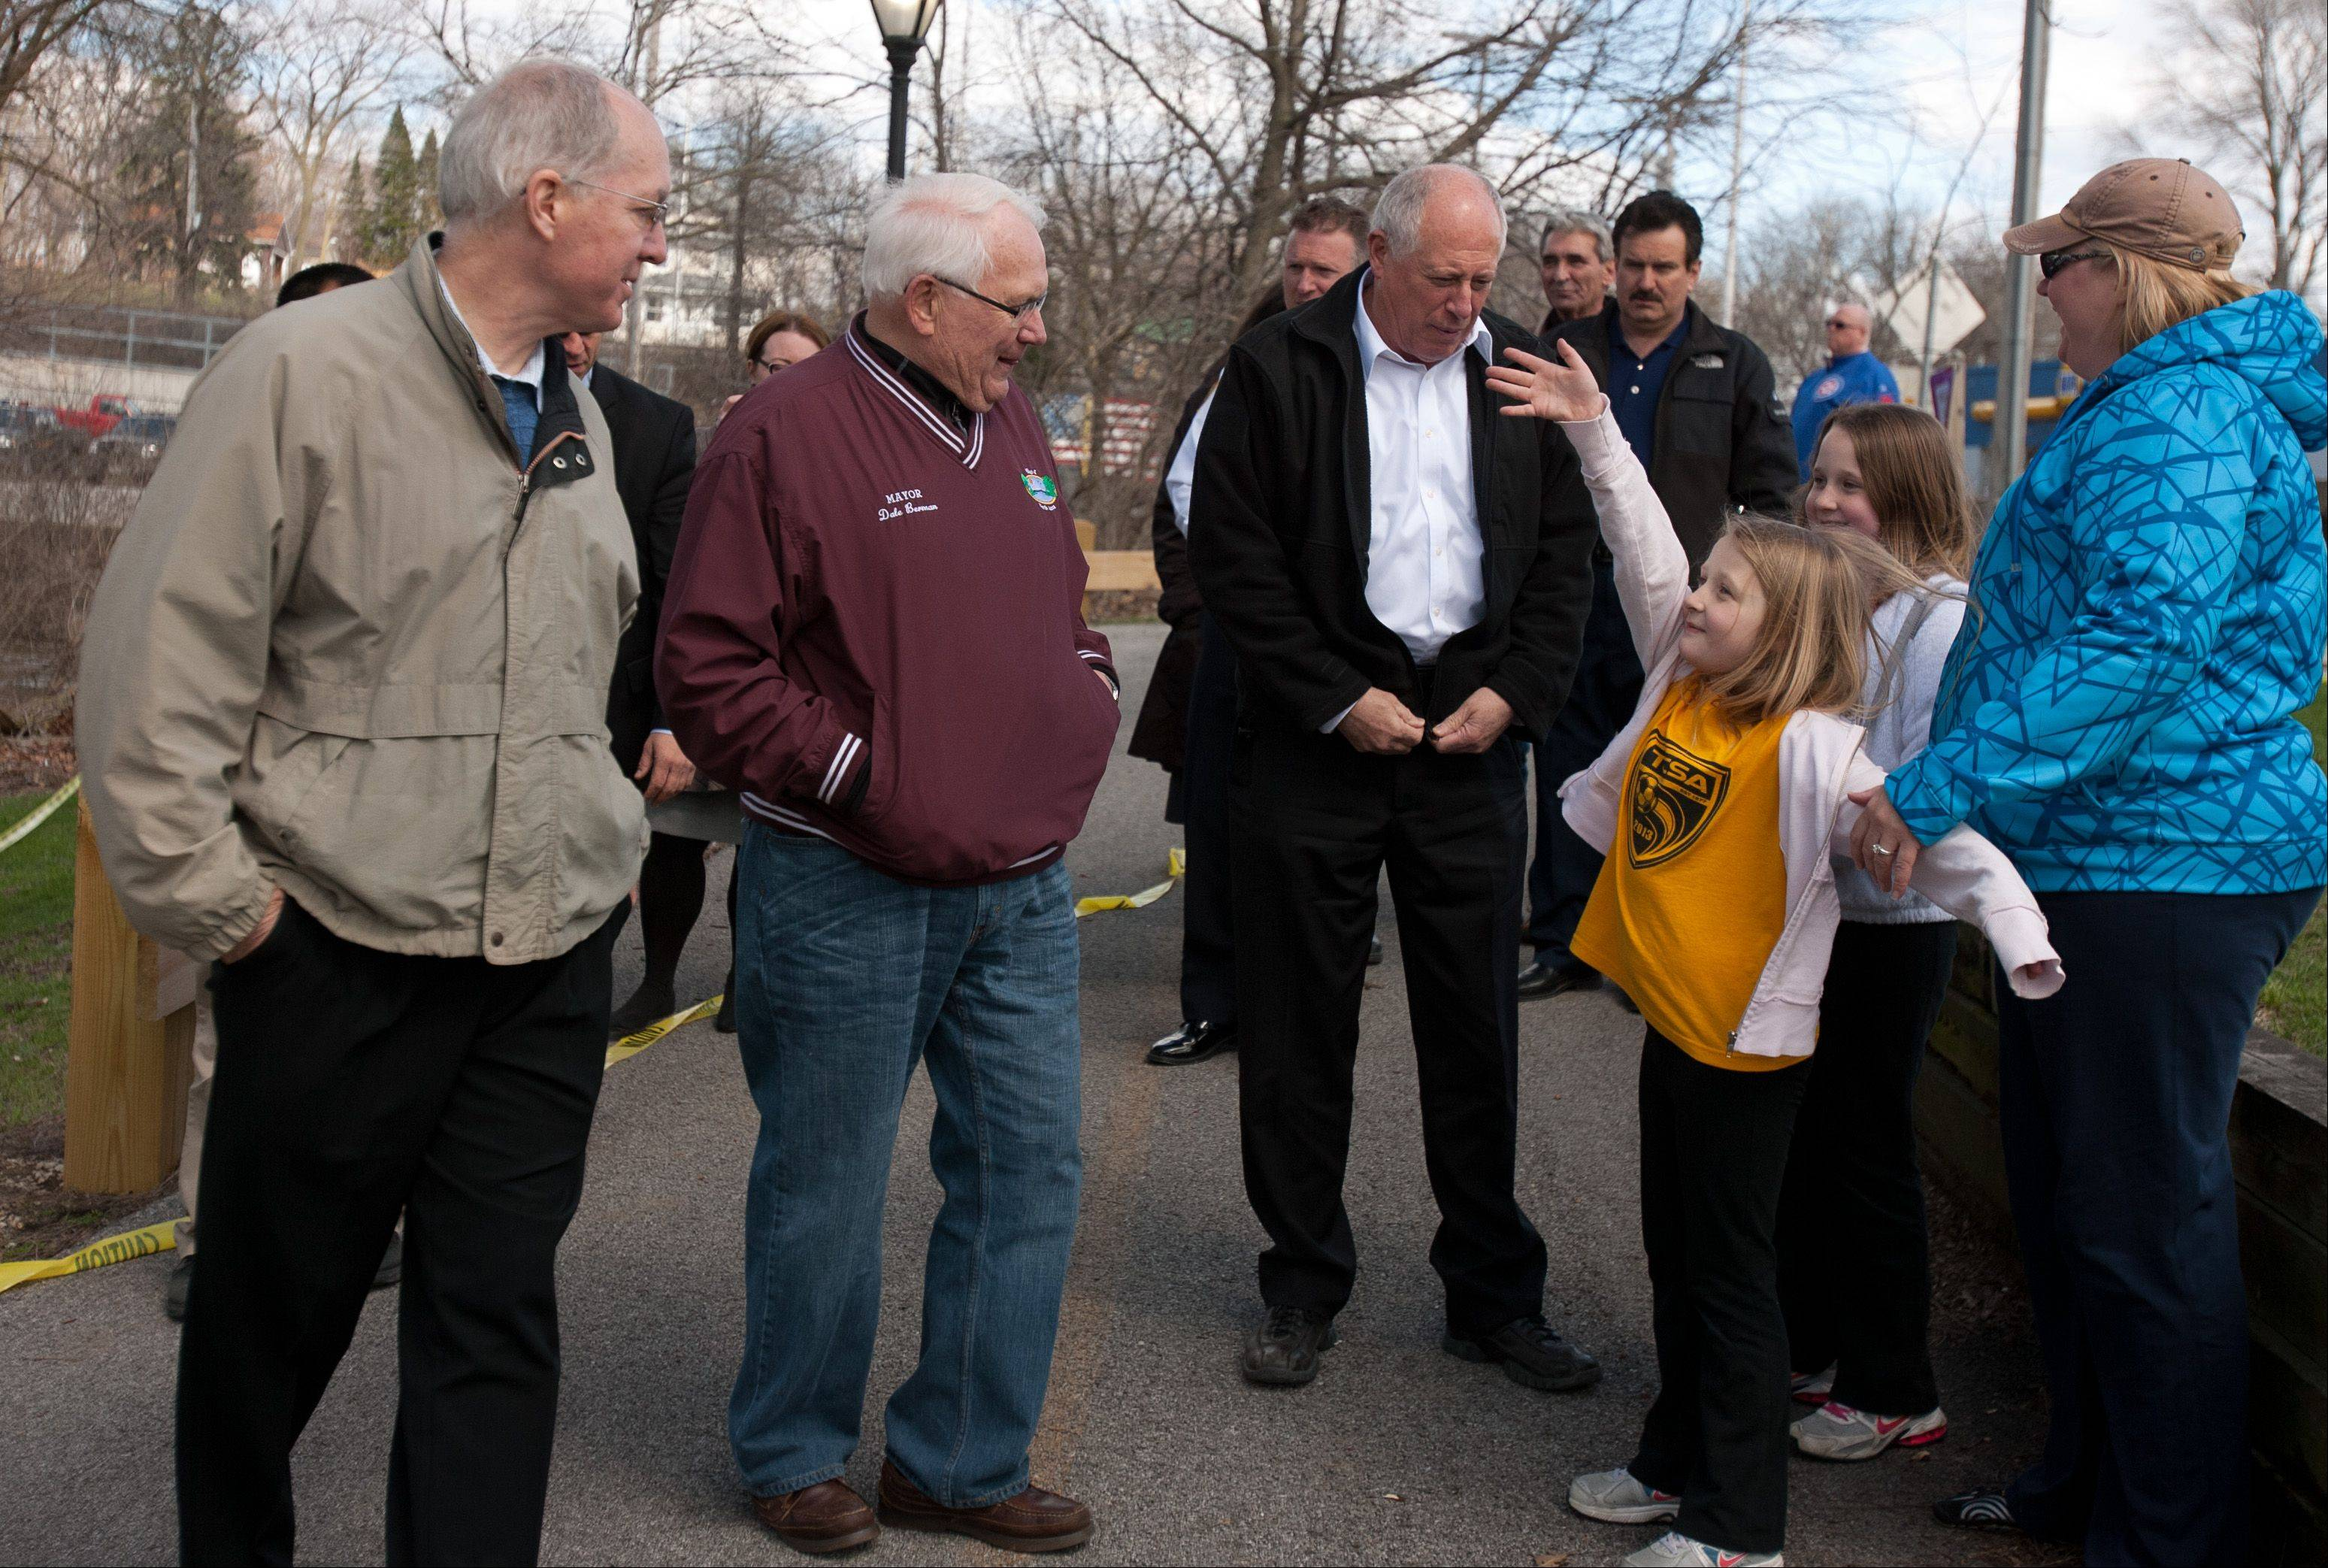 Gov. Pat Quinn addresses flooding concerns throughout the state during a news conference Saturday along the Fox River in North Aurora. U.S. Rep. Bill Foster, left, and North Aurora Village President Dale Berman, center, also attended.